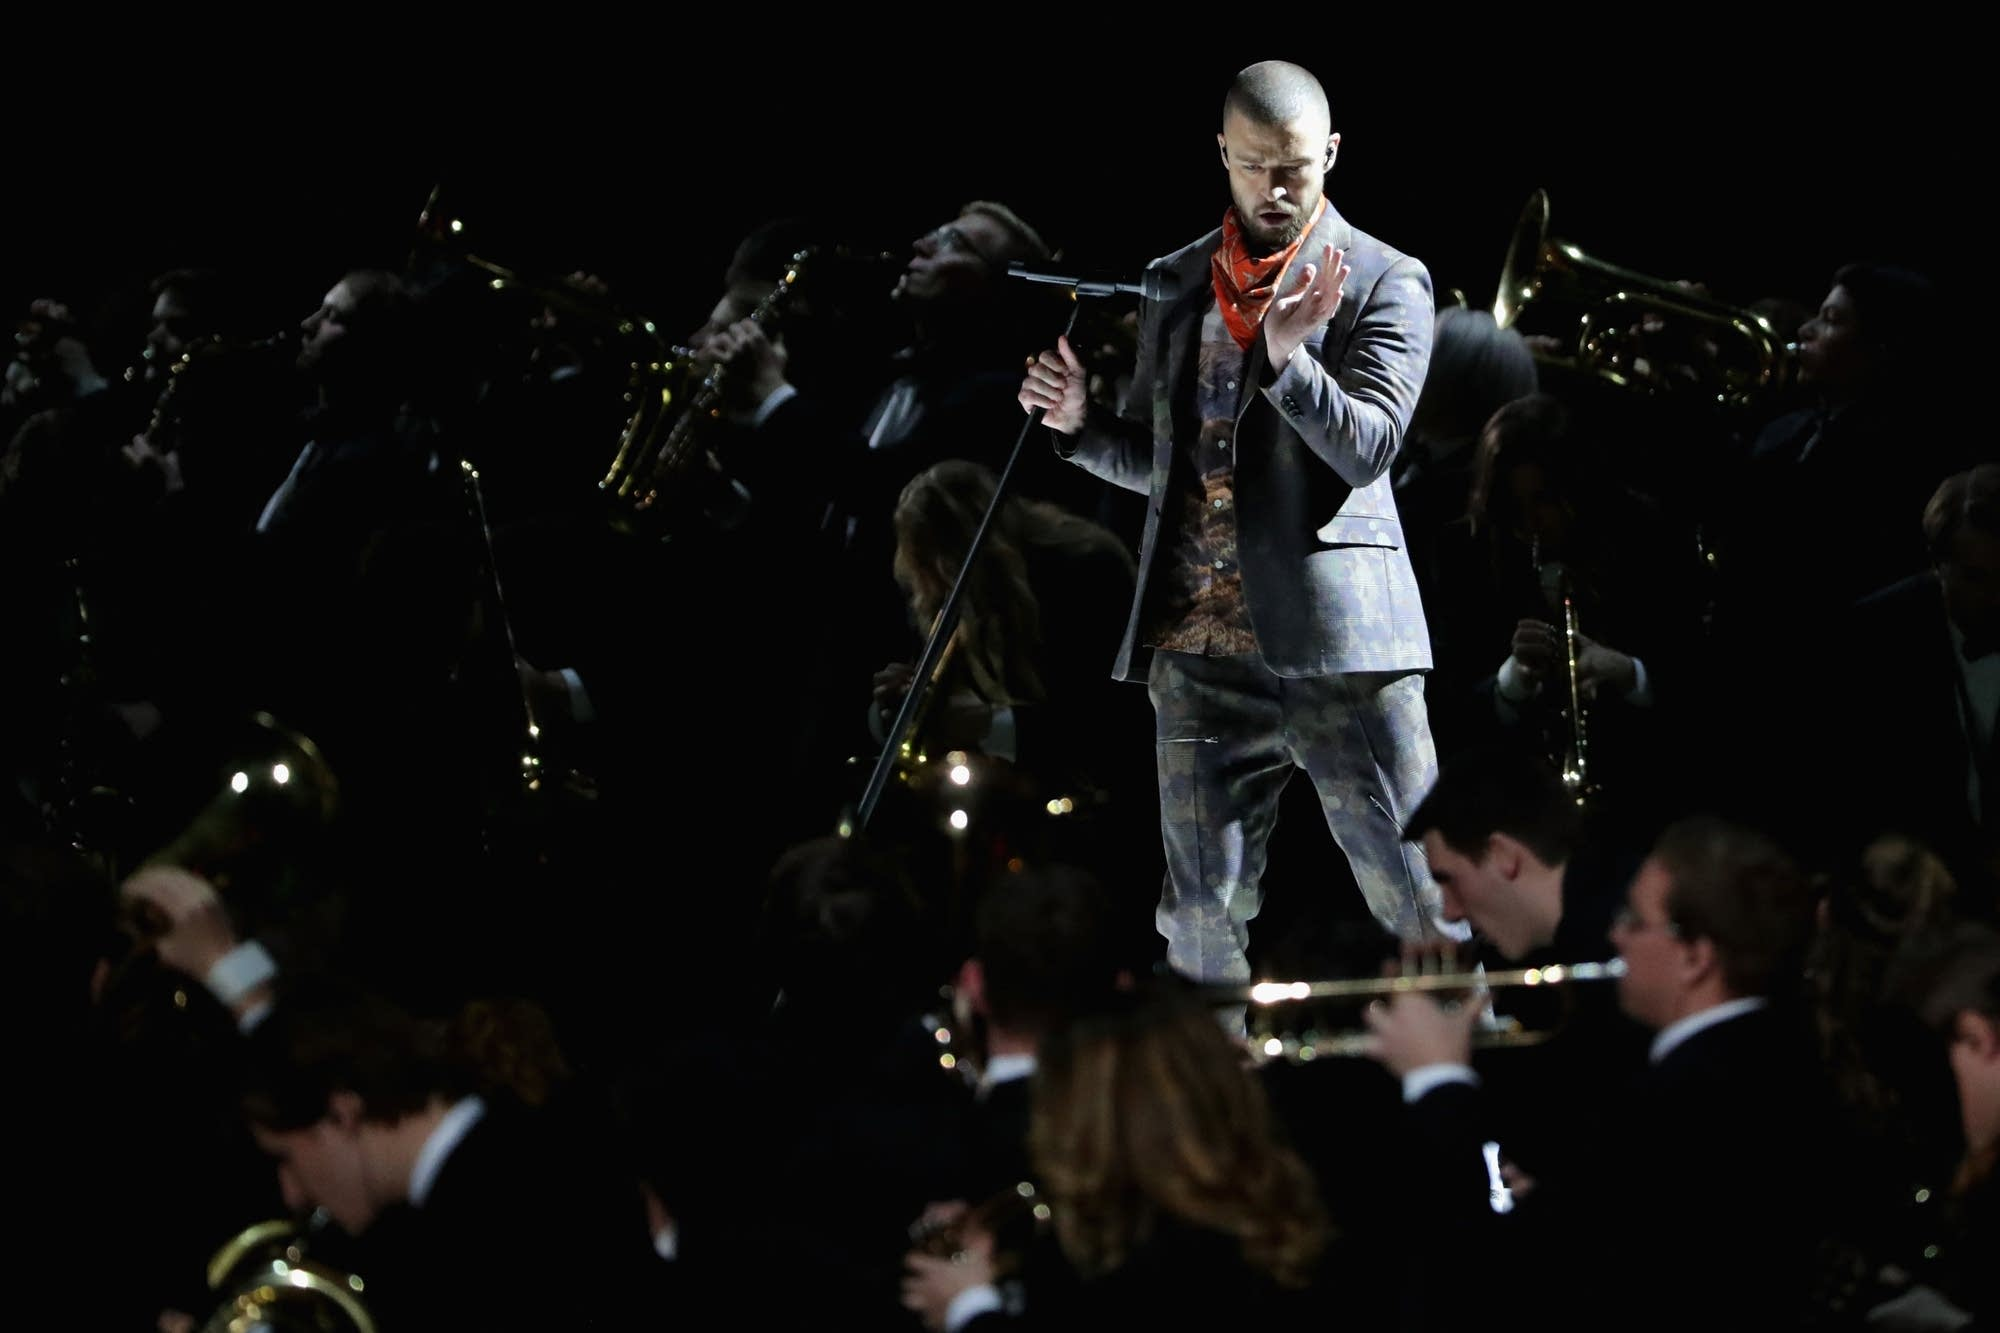 Justin Timberlake performs with the U band.